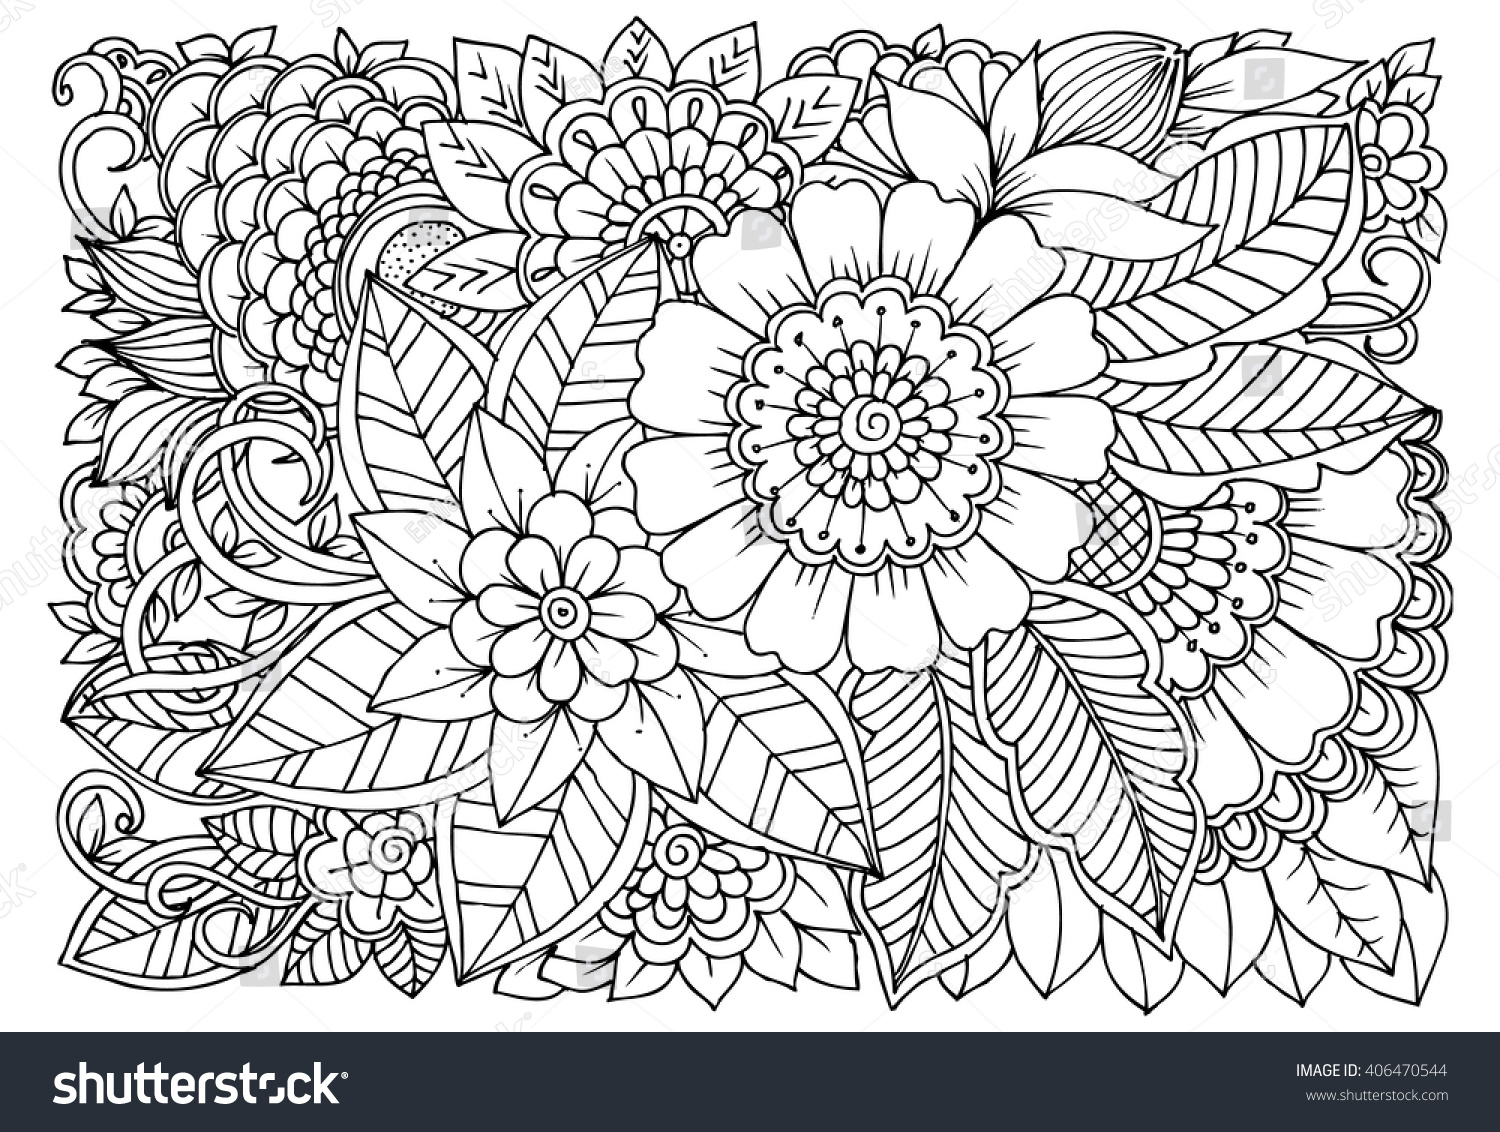 Coloring pages relaxing - Zentangle Floral Doodles In Black And White Coloring Pages For Adult Relaxing Job